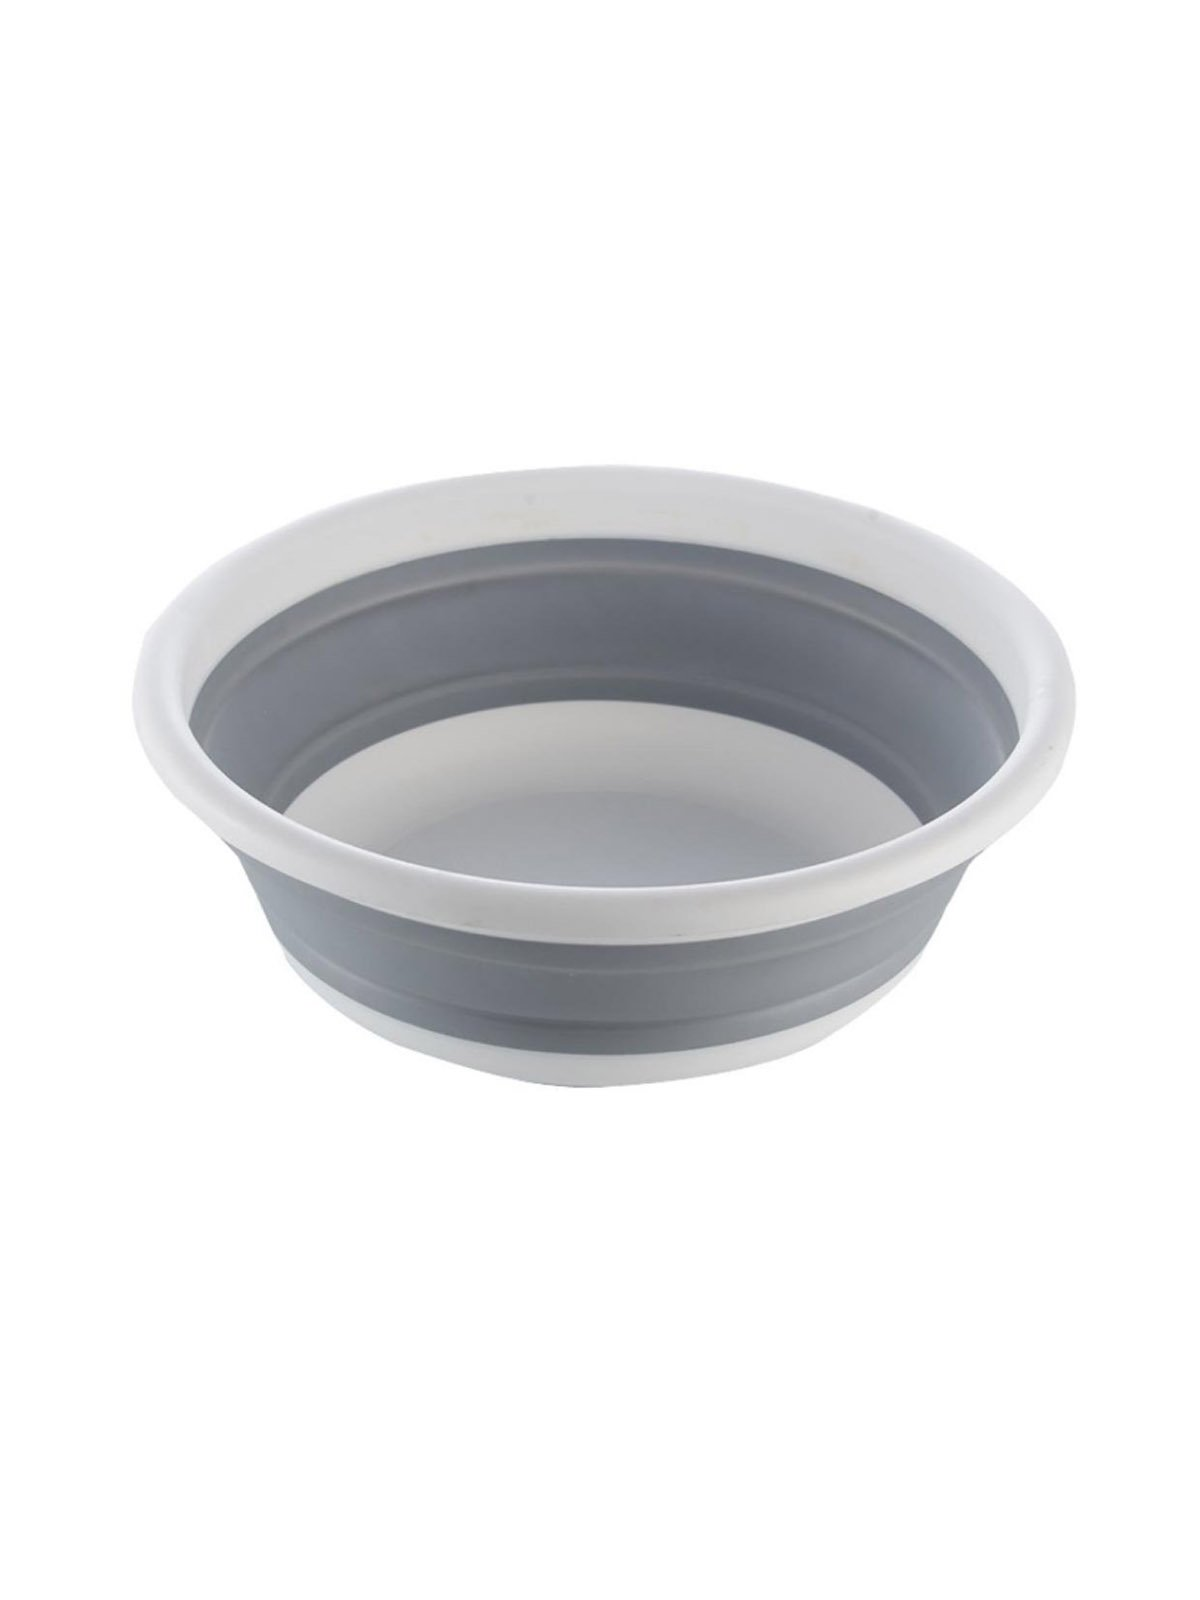 WJL Multi-Functional Portable Folding Silicone Basin Wash Basin and Bucket, for Daily Use or Travel Camping